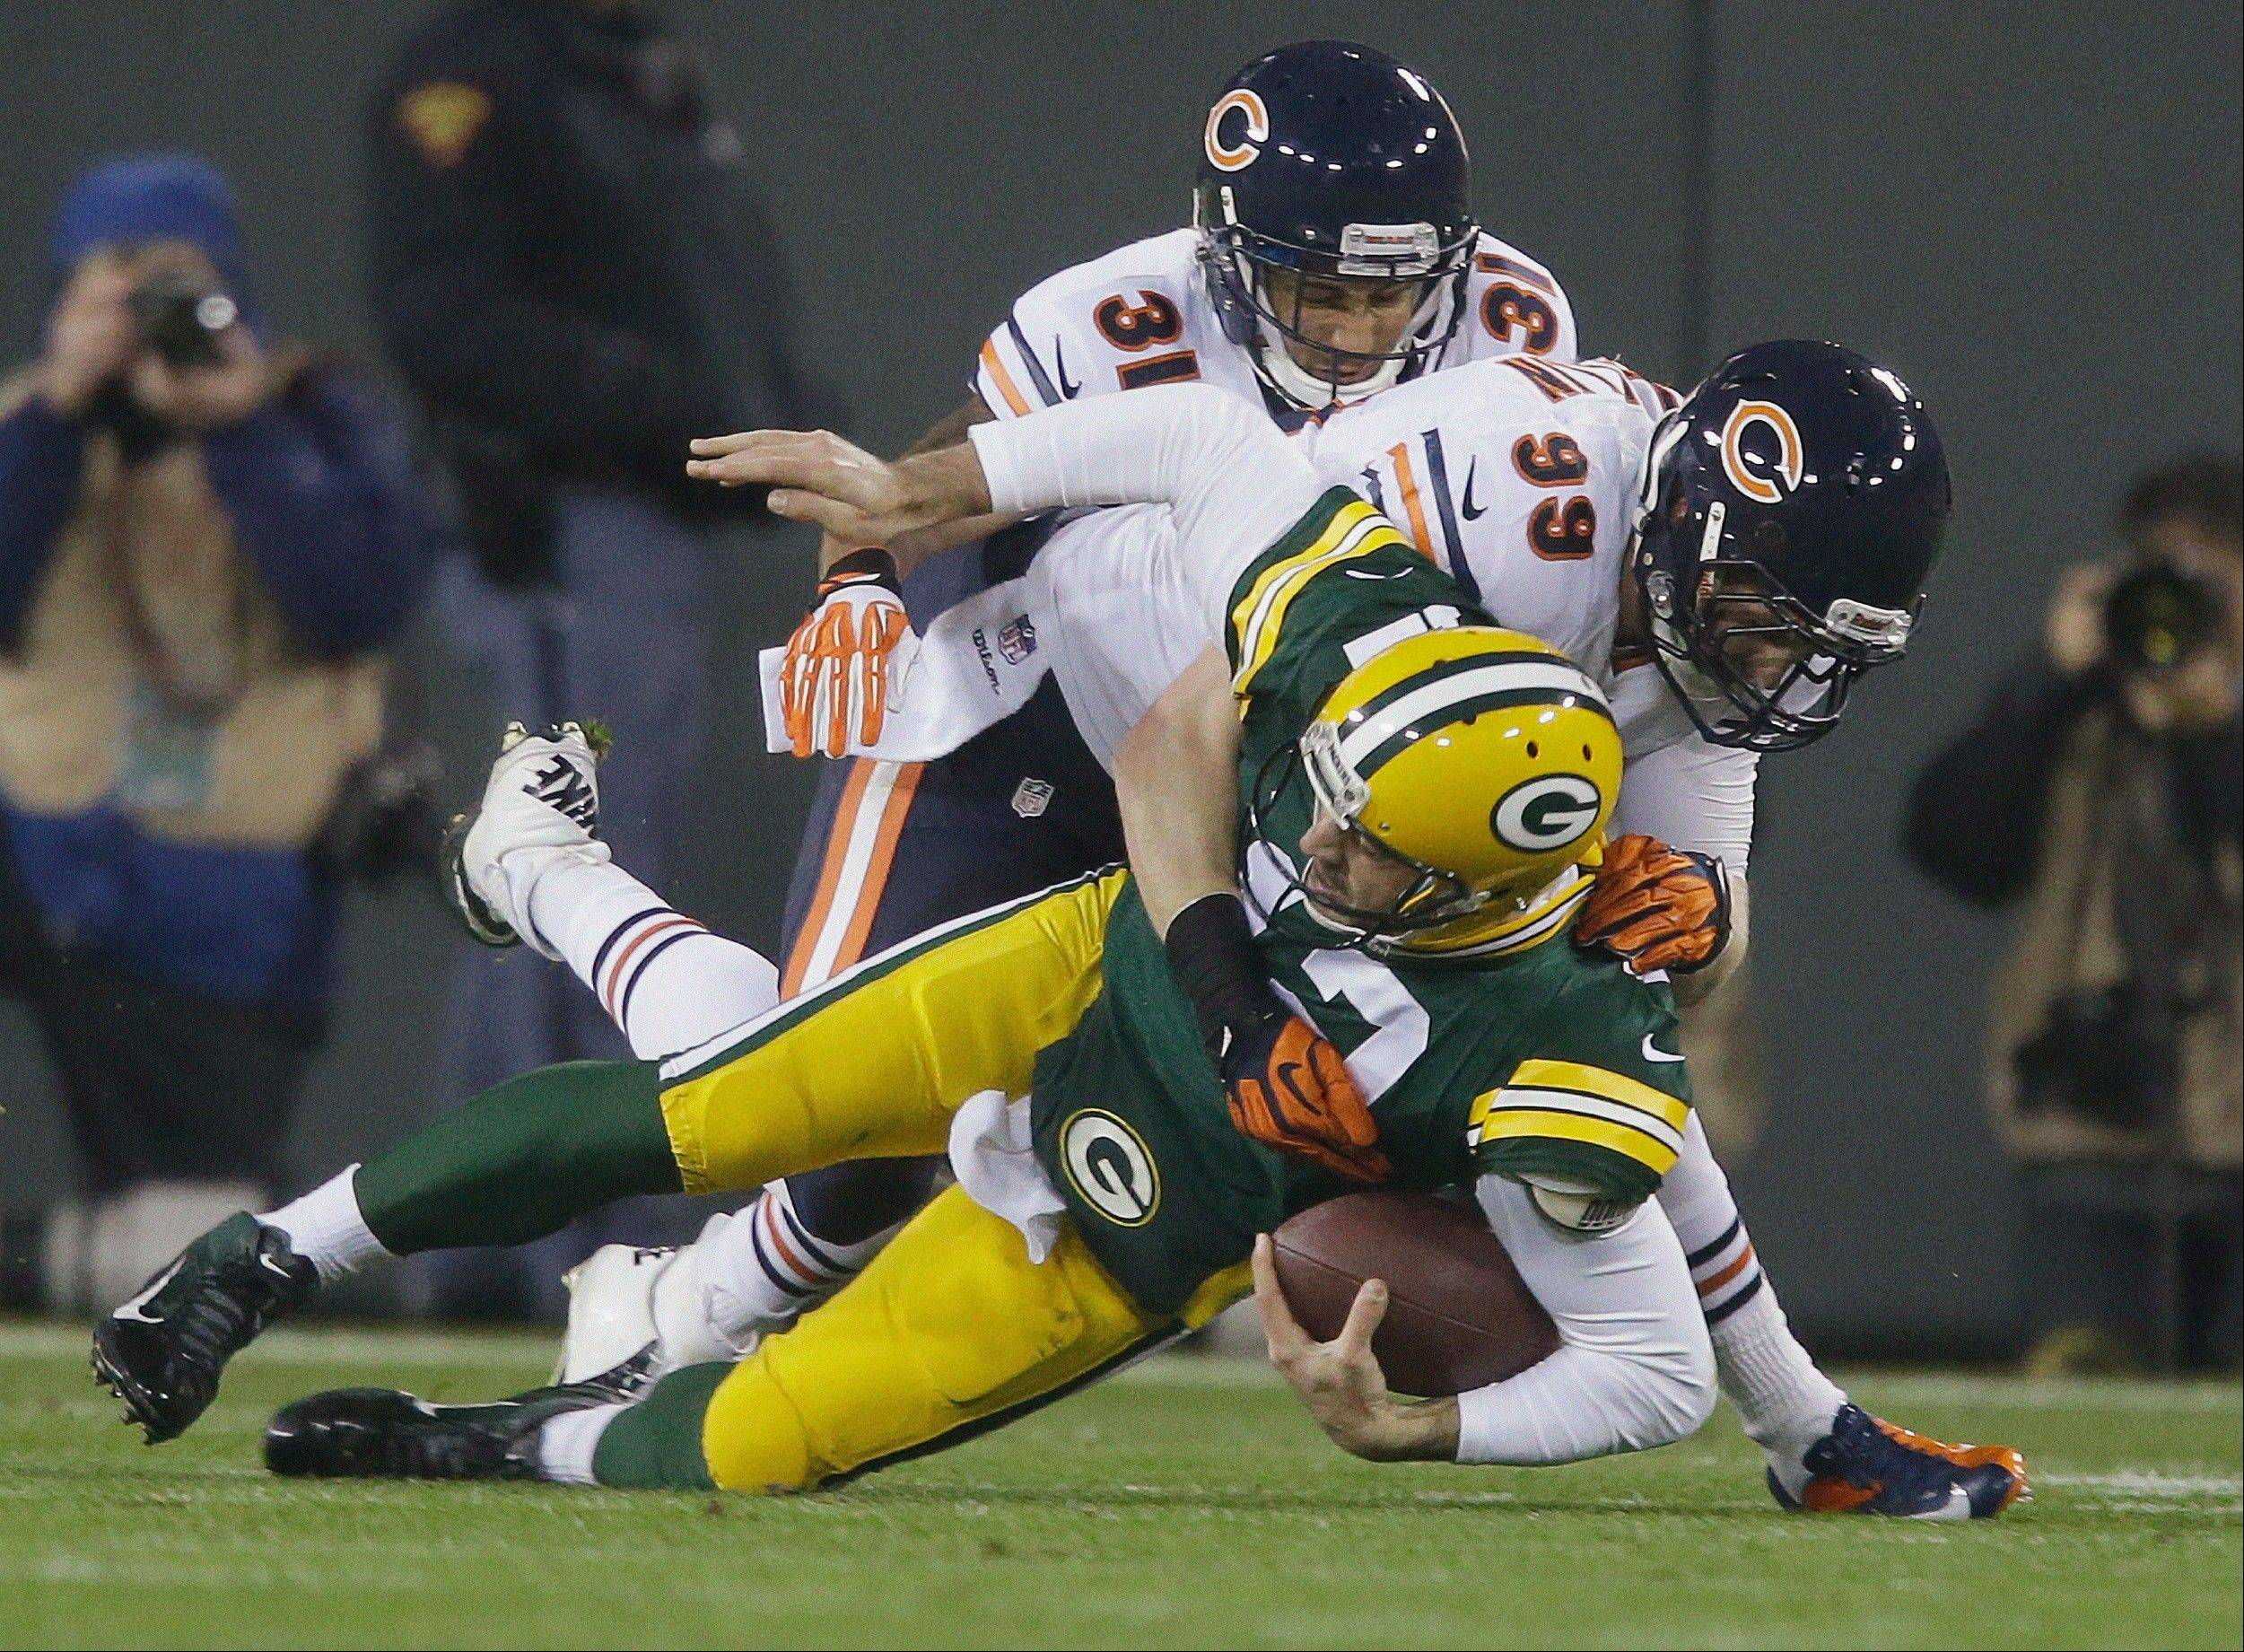 Green Bay Packers quarterback Aaron Rodgers is sacked by Chicago Bears' Shea McClellin (99) and Isaiah Frey (31) during the first half . Rodgers left the game after the play.